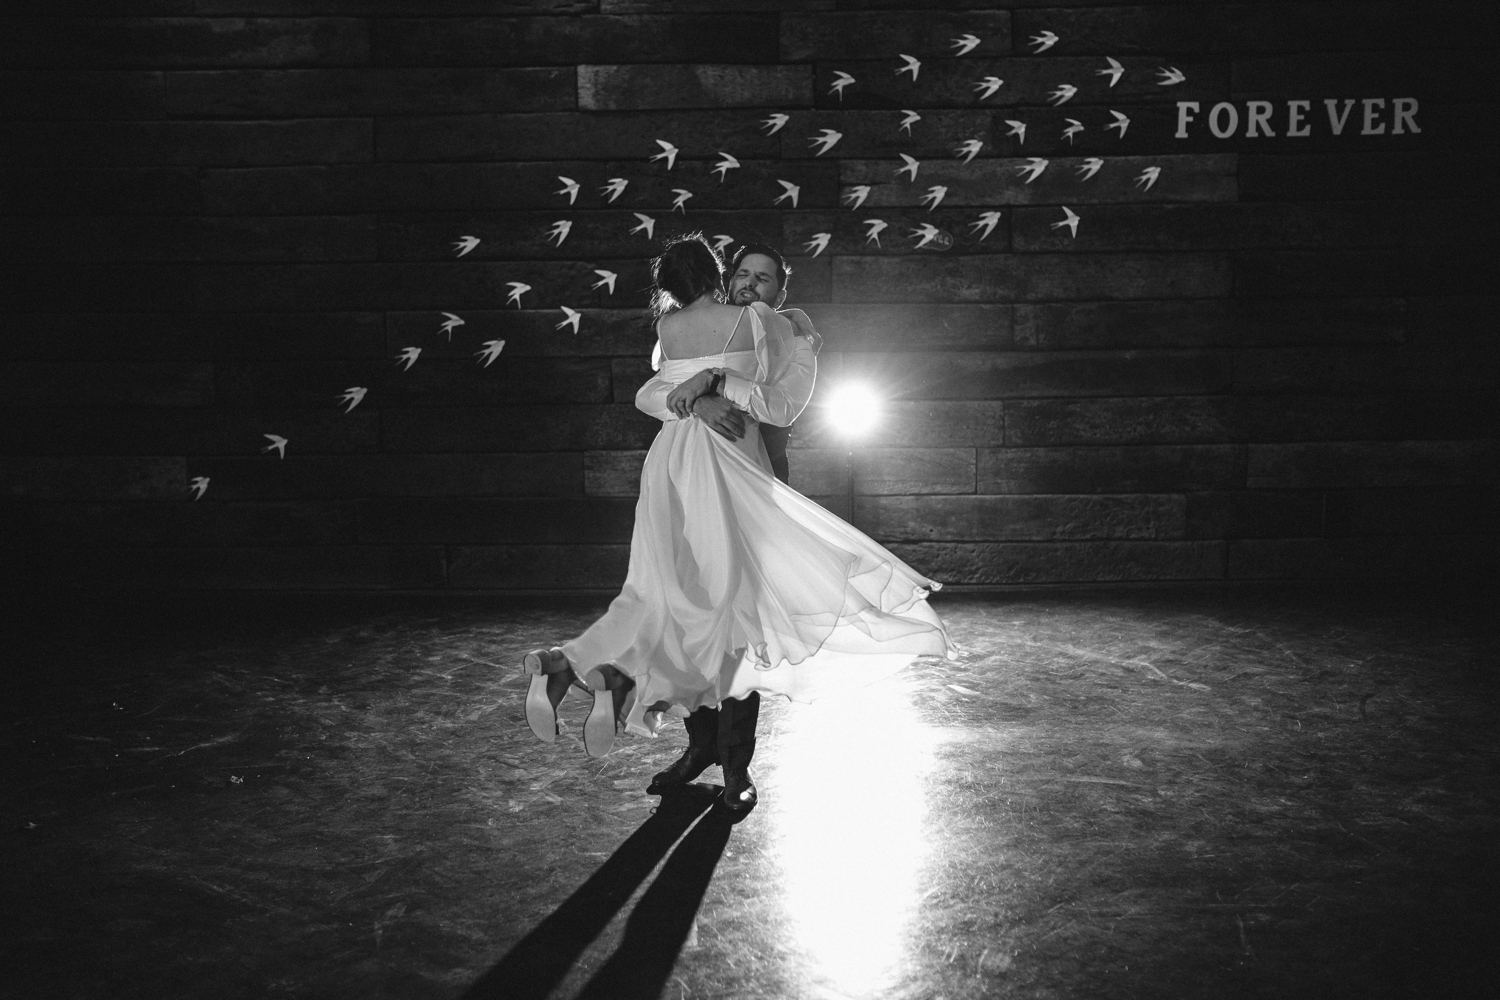 Groom spins bride during their first dance at their Scandi style wedding at the Pipe Shop in North Vancouver